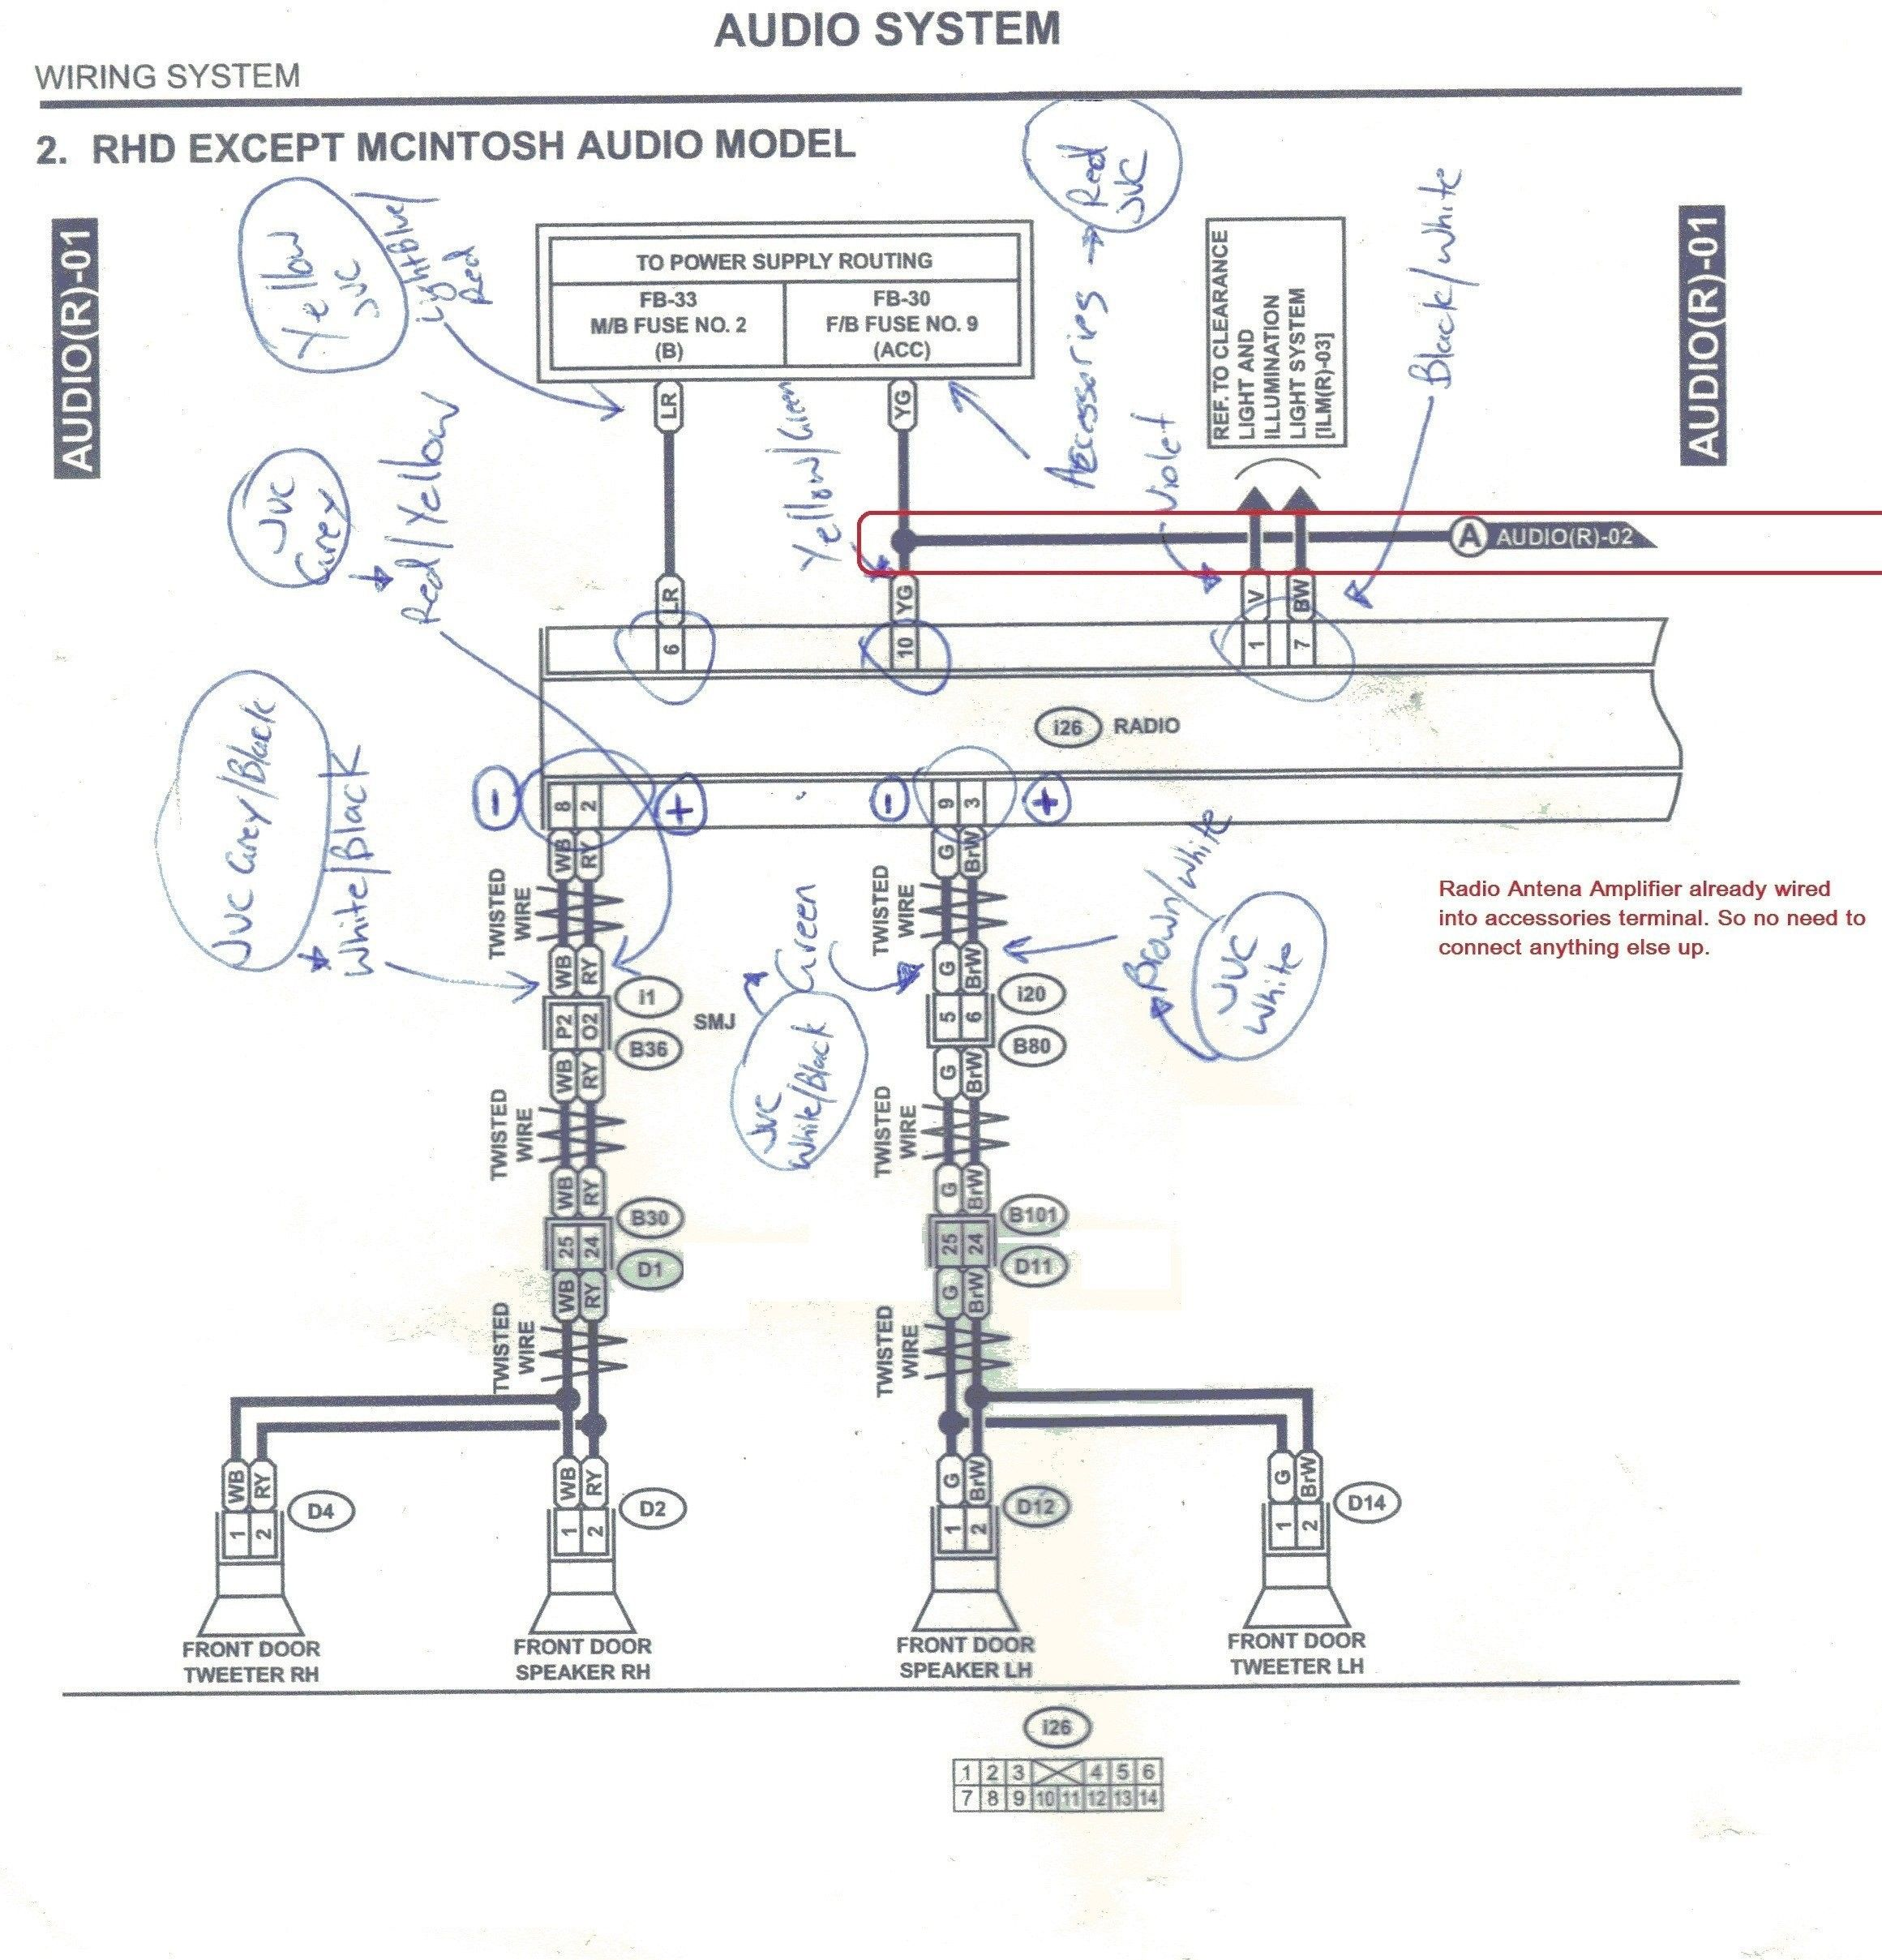 new wiring diagram for subaru car radio #diagram #diagramtemplate  #diagramsample check more at https://servisi.co/wiring-diagram-for-subaru -car-radio/  pinterest